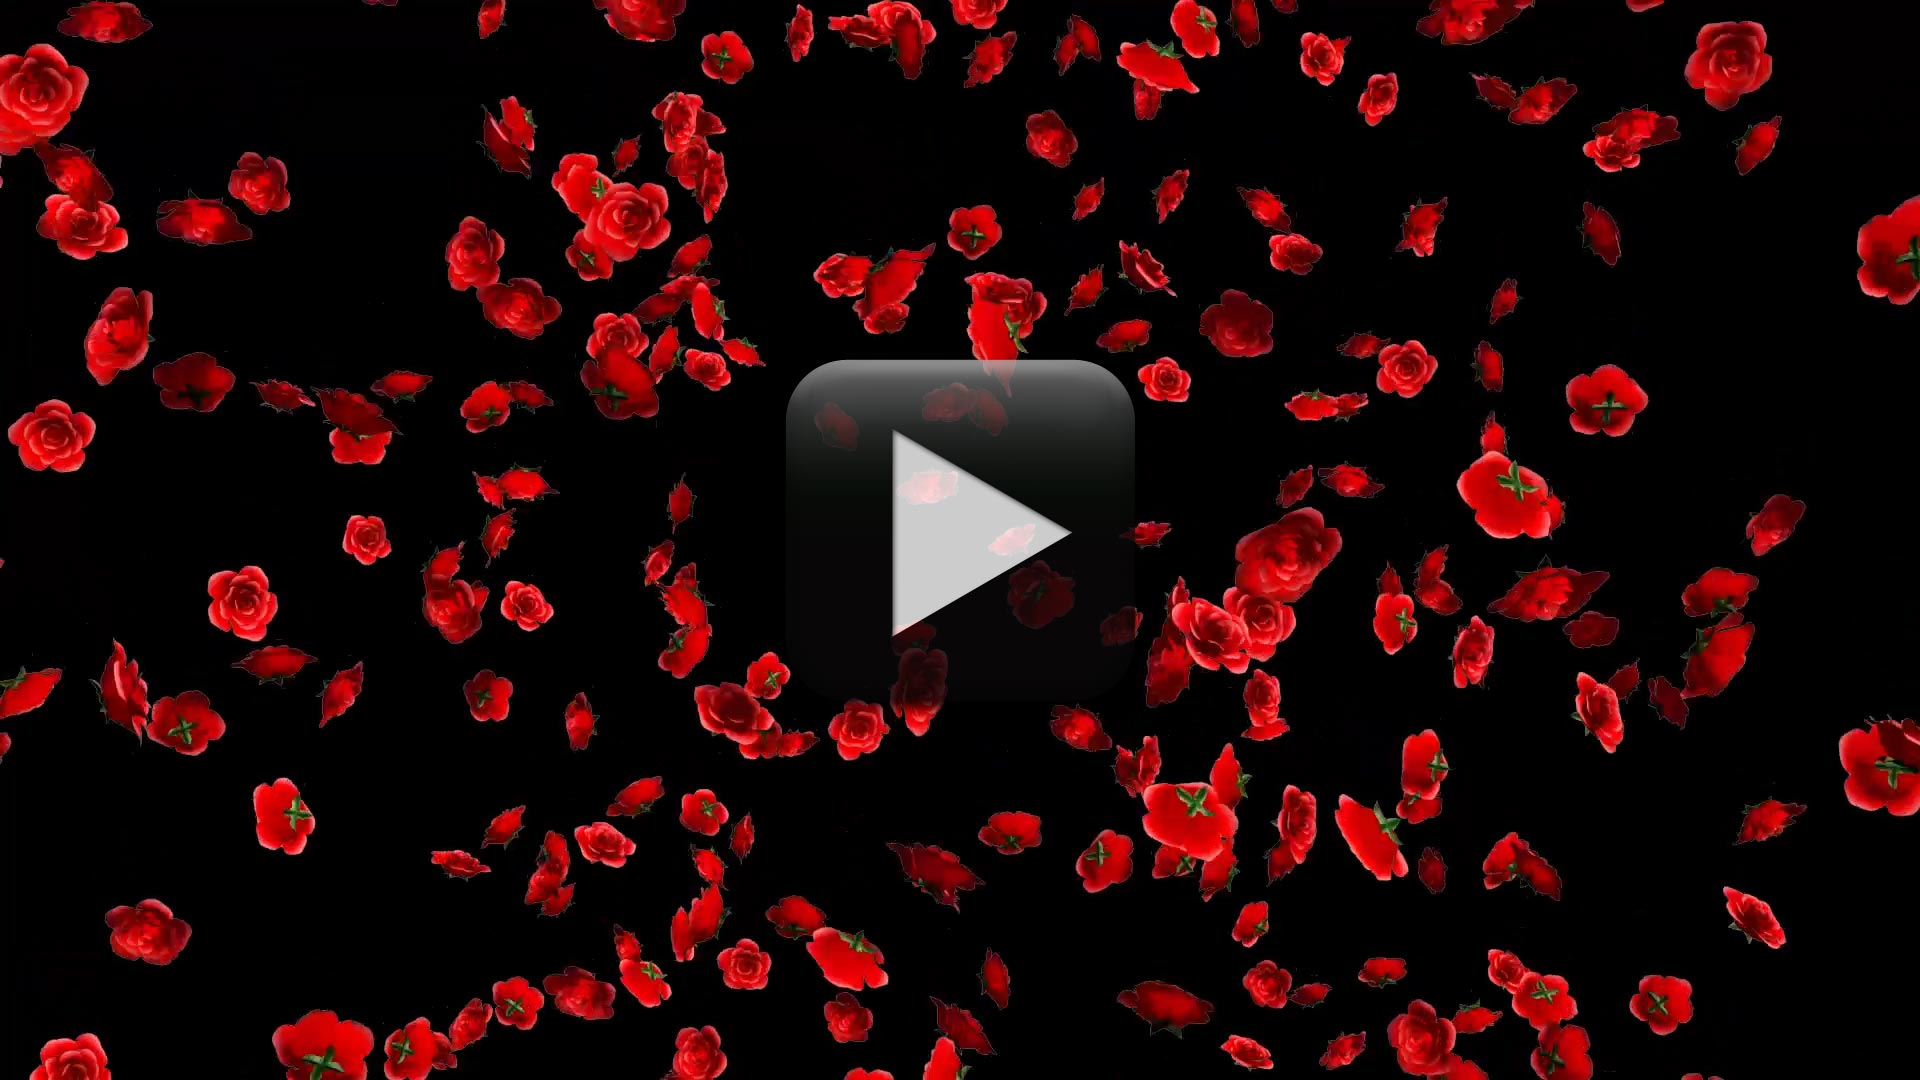 Falling Rose Flowers Animation in Black Screen Background